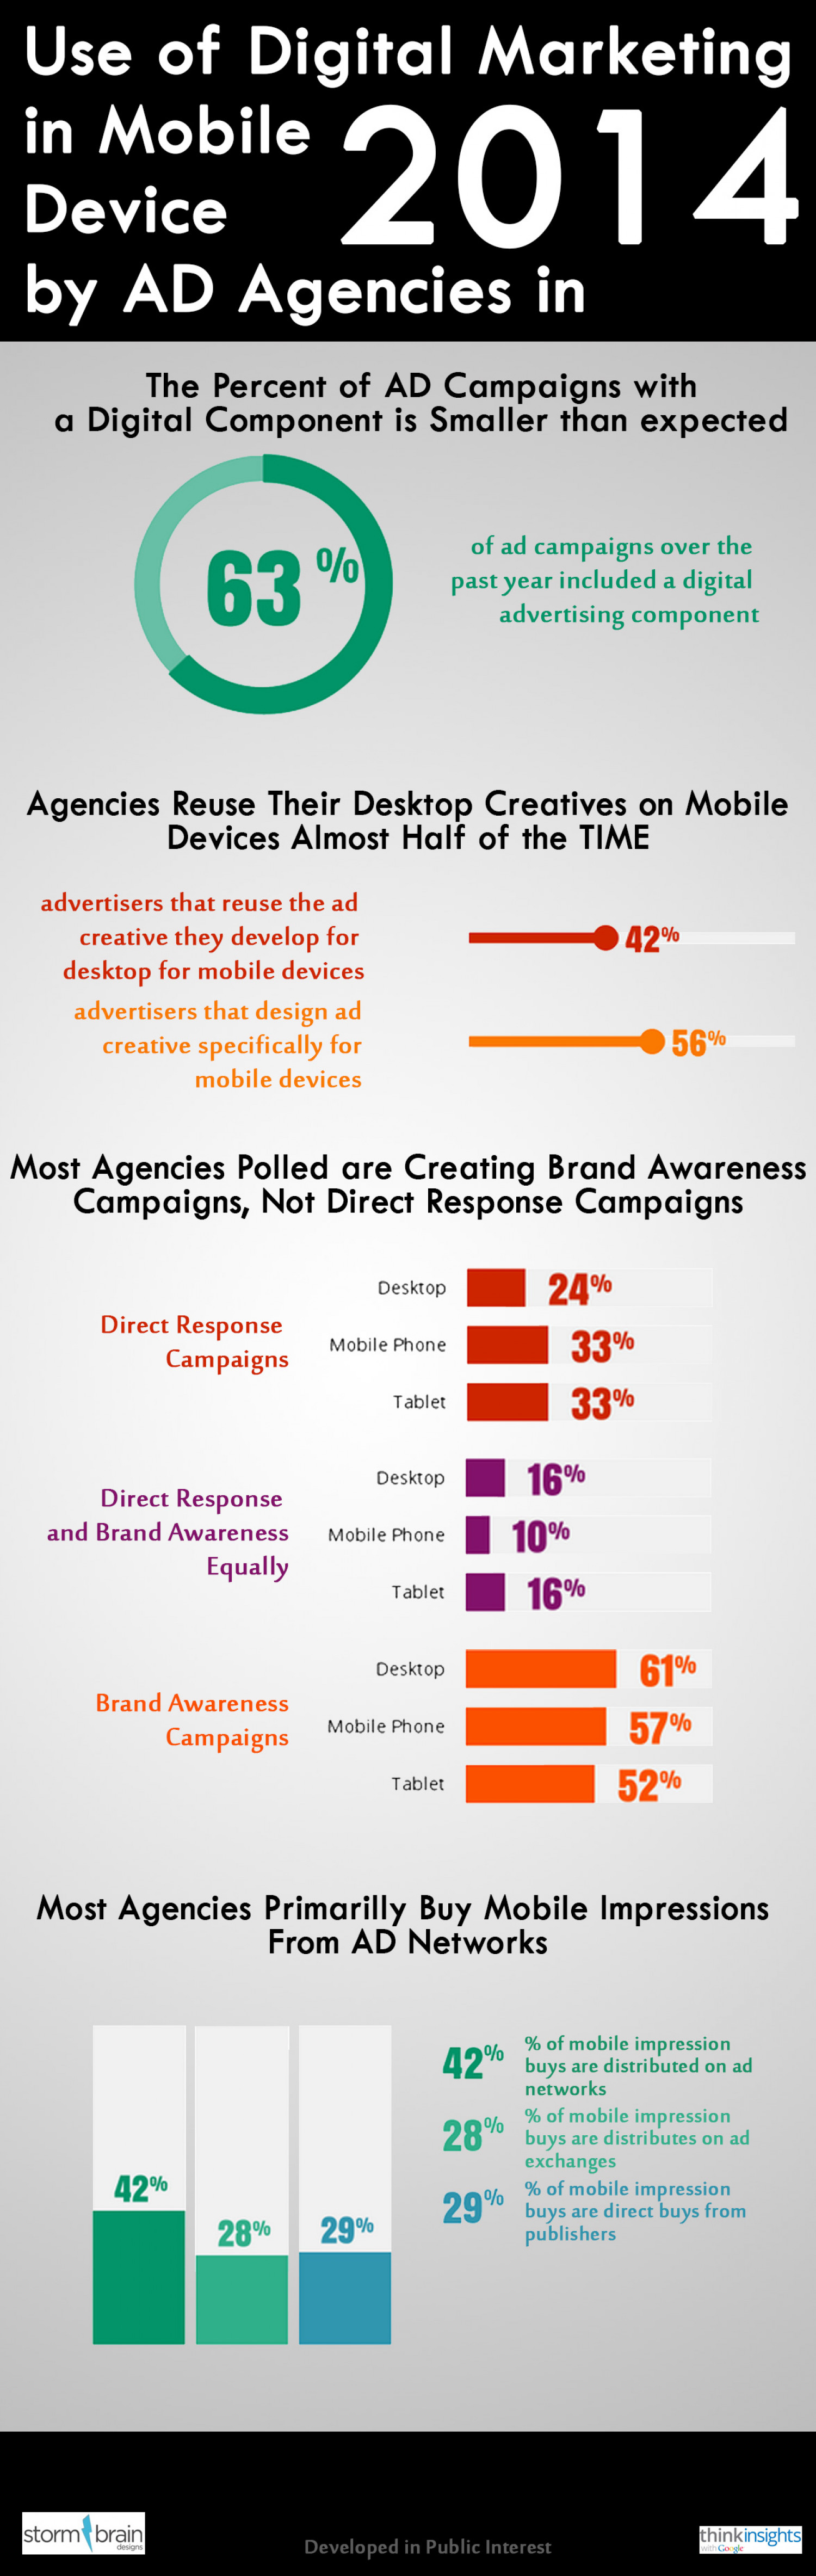 Use of Digital Marketing in Mobile Device by AD Agencies in 2014 Infographic